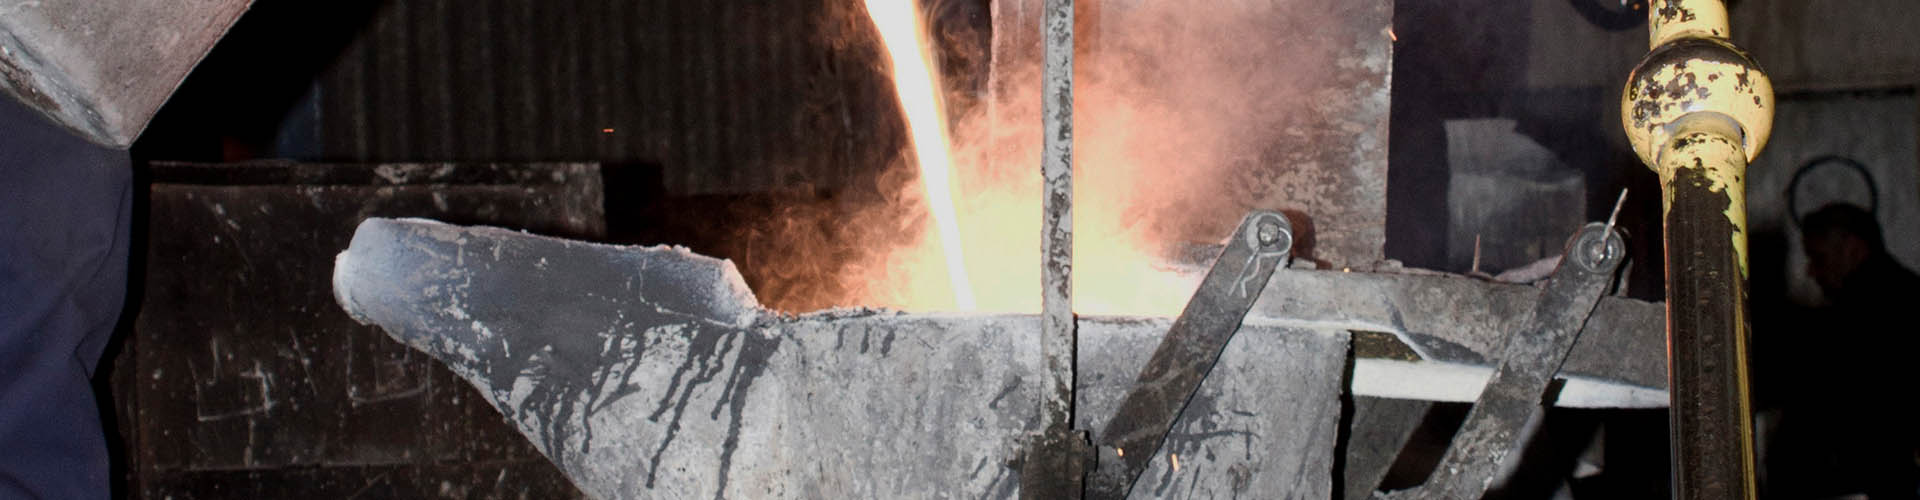 Pouring Metal Casting